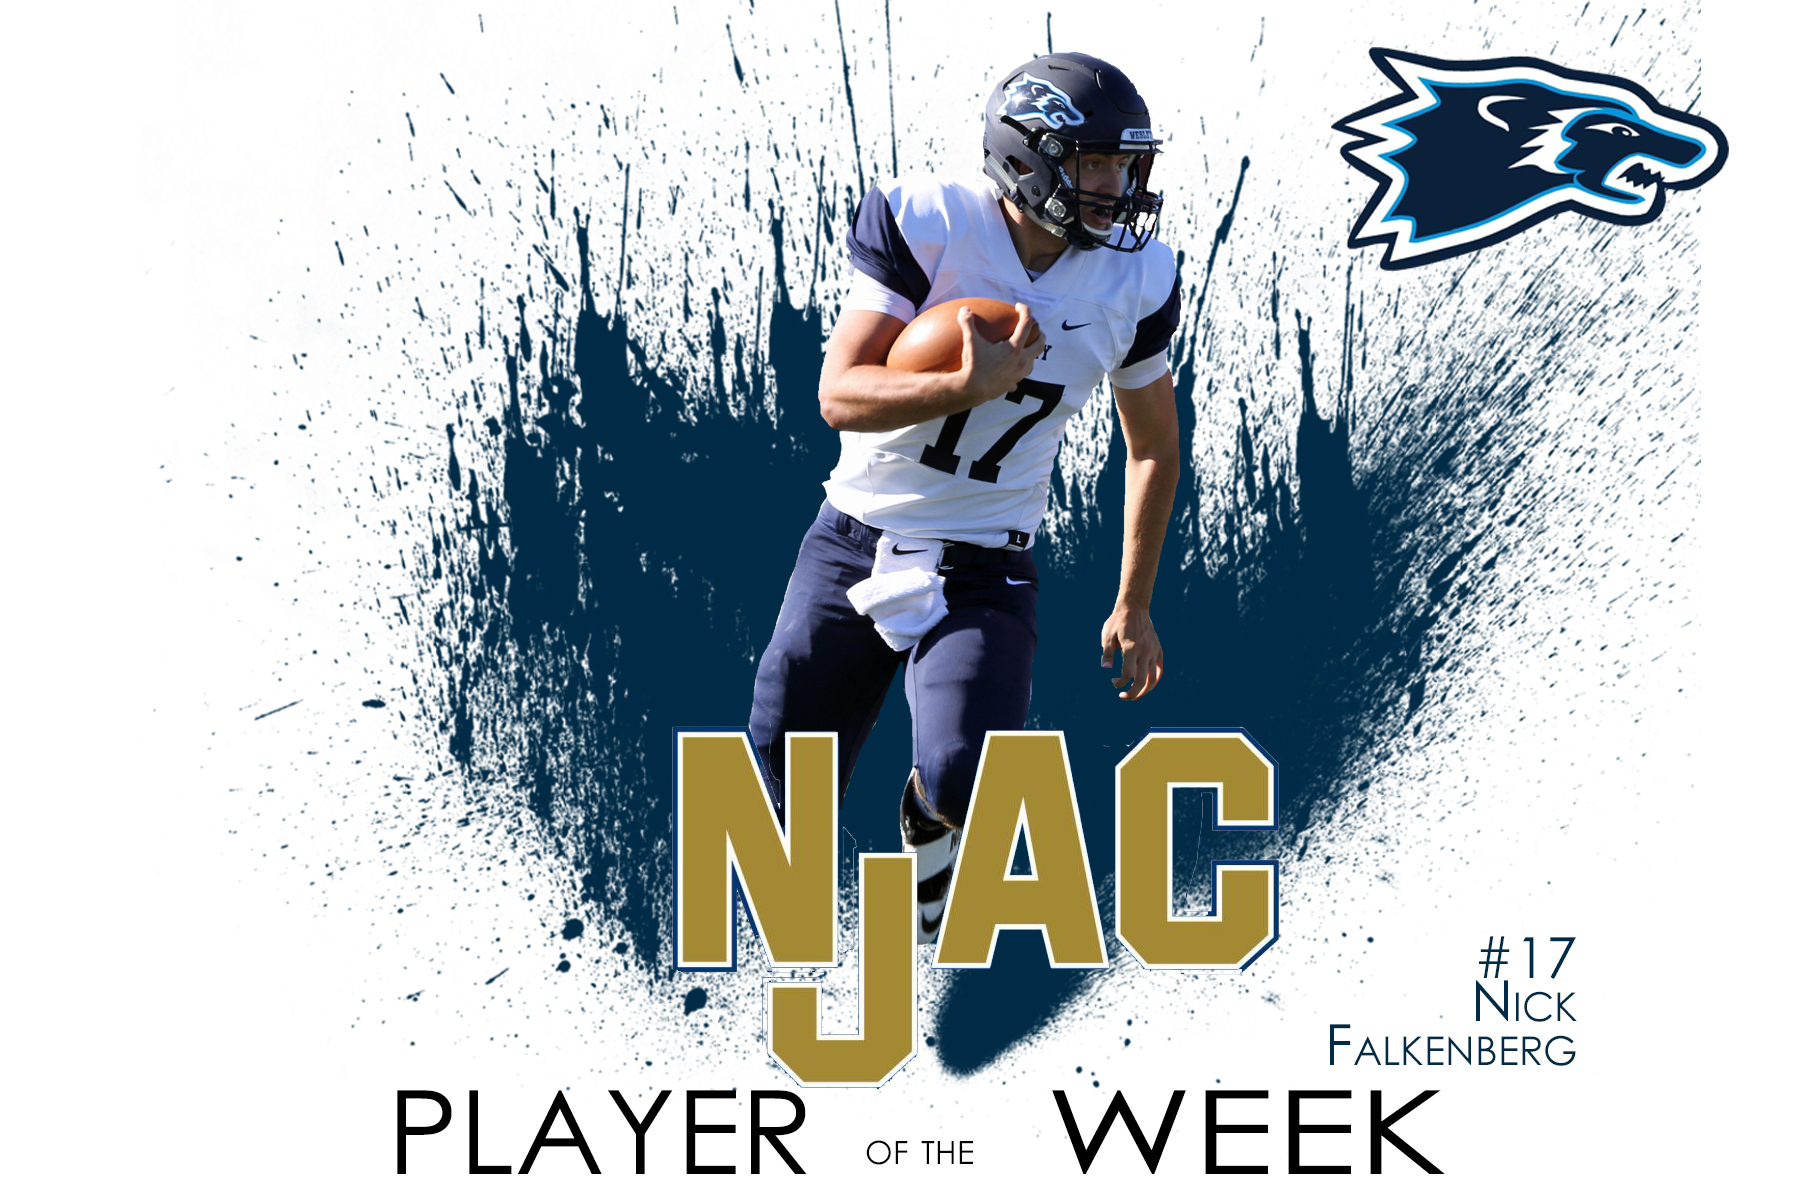 After Career Day, Falkenberg Named NJAC Player of the Week